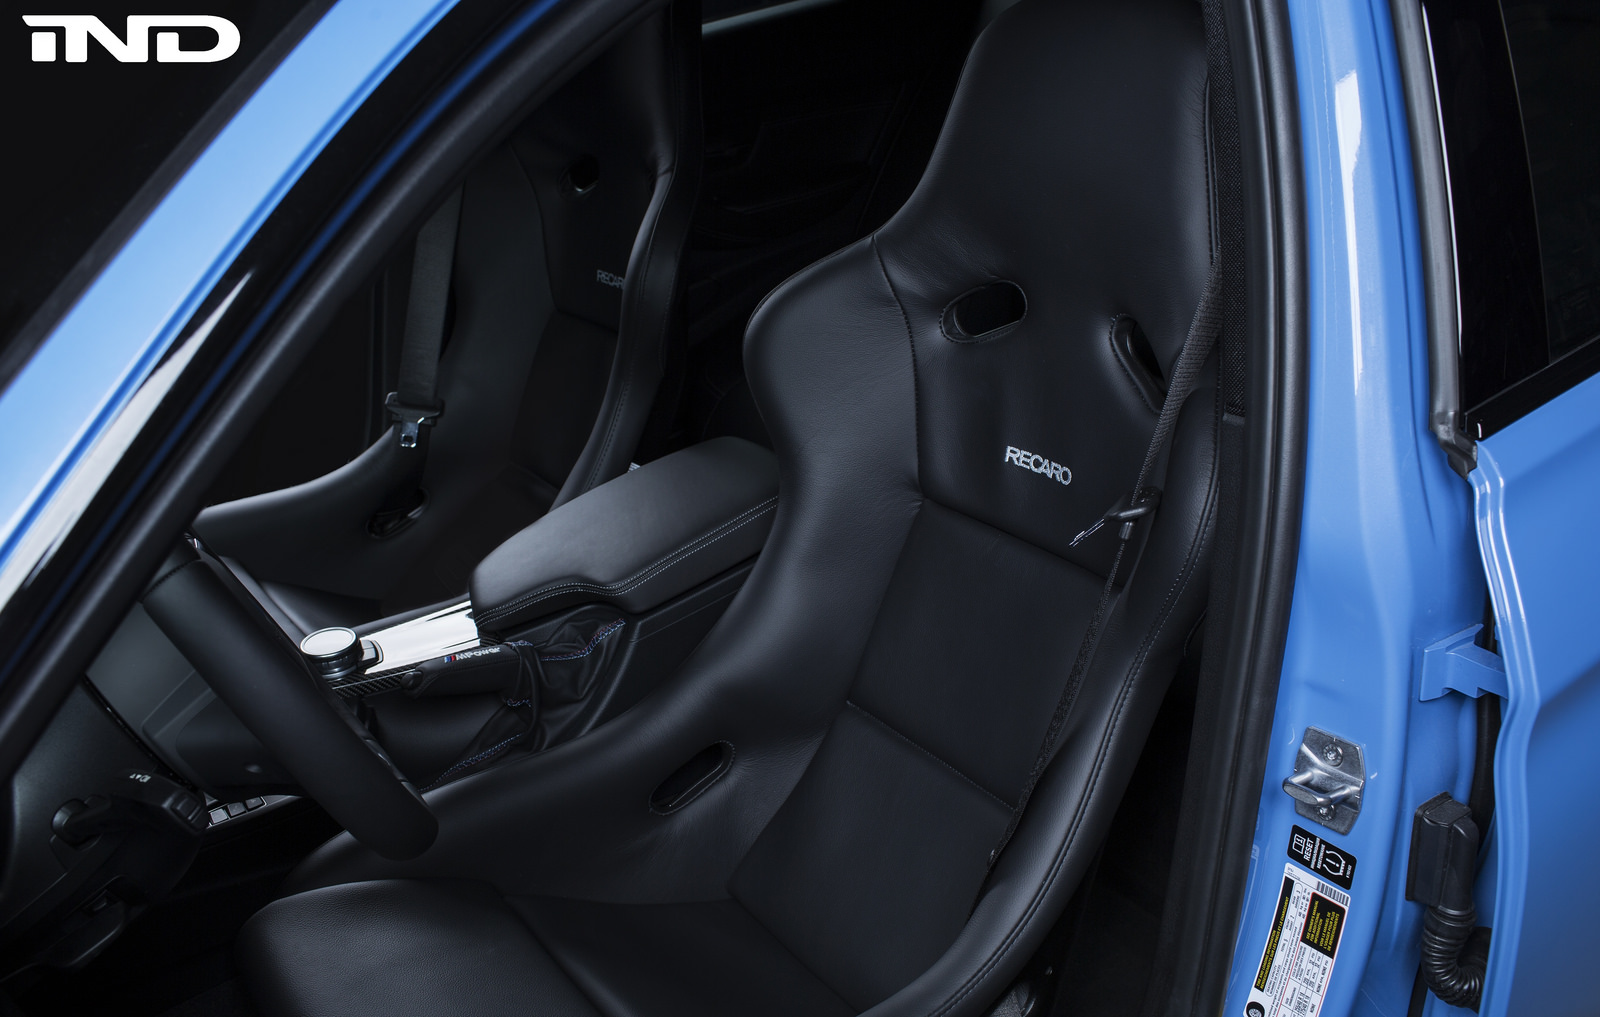 BMW F80 M3 Gets Recaro Seats - autoevolution